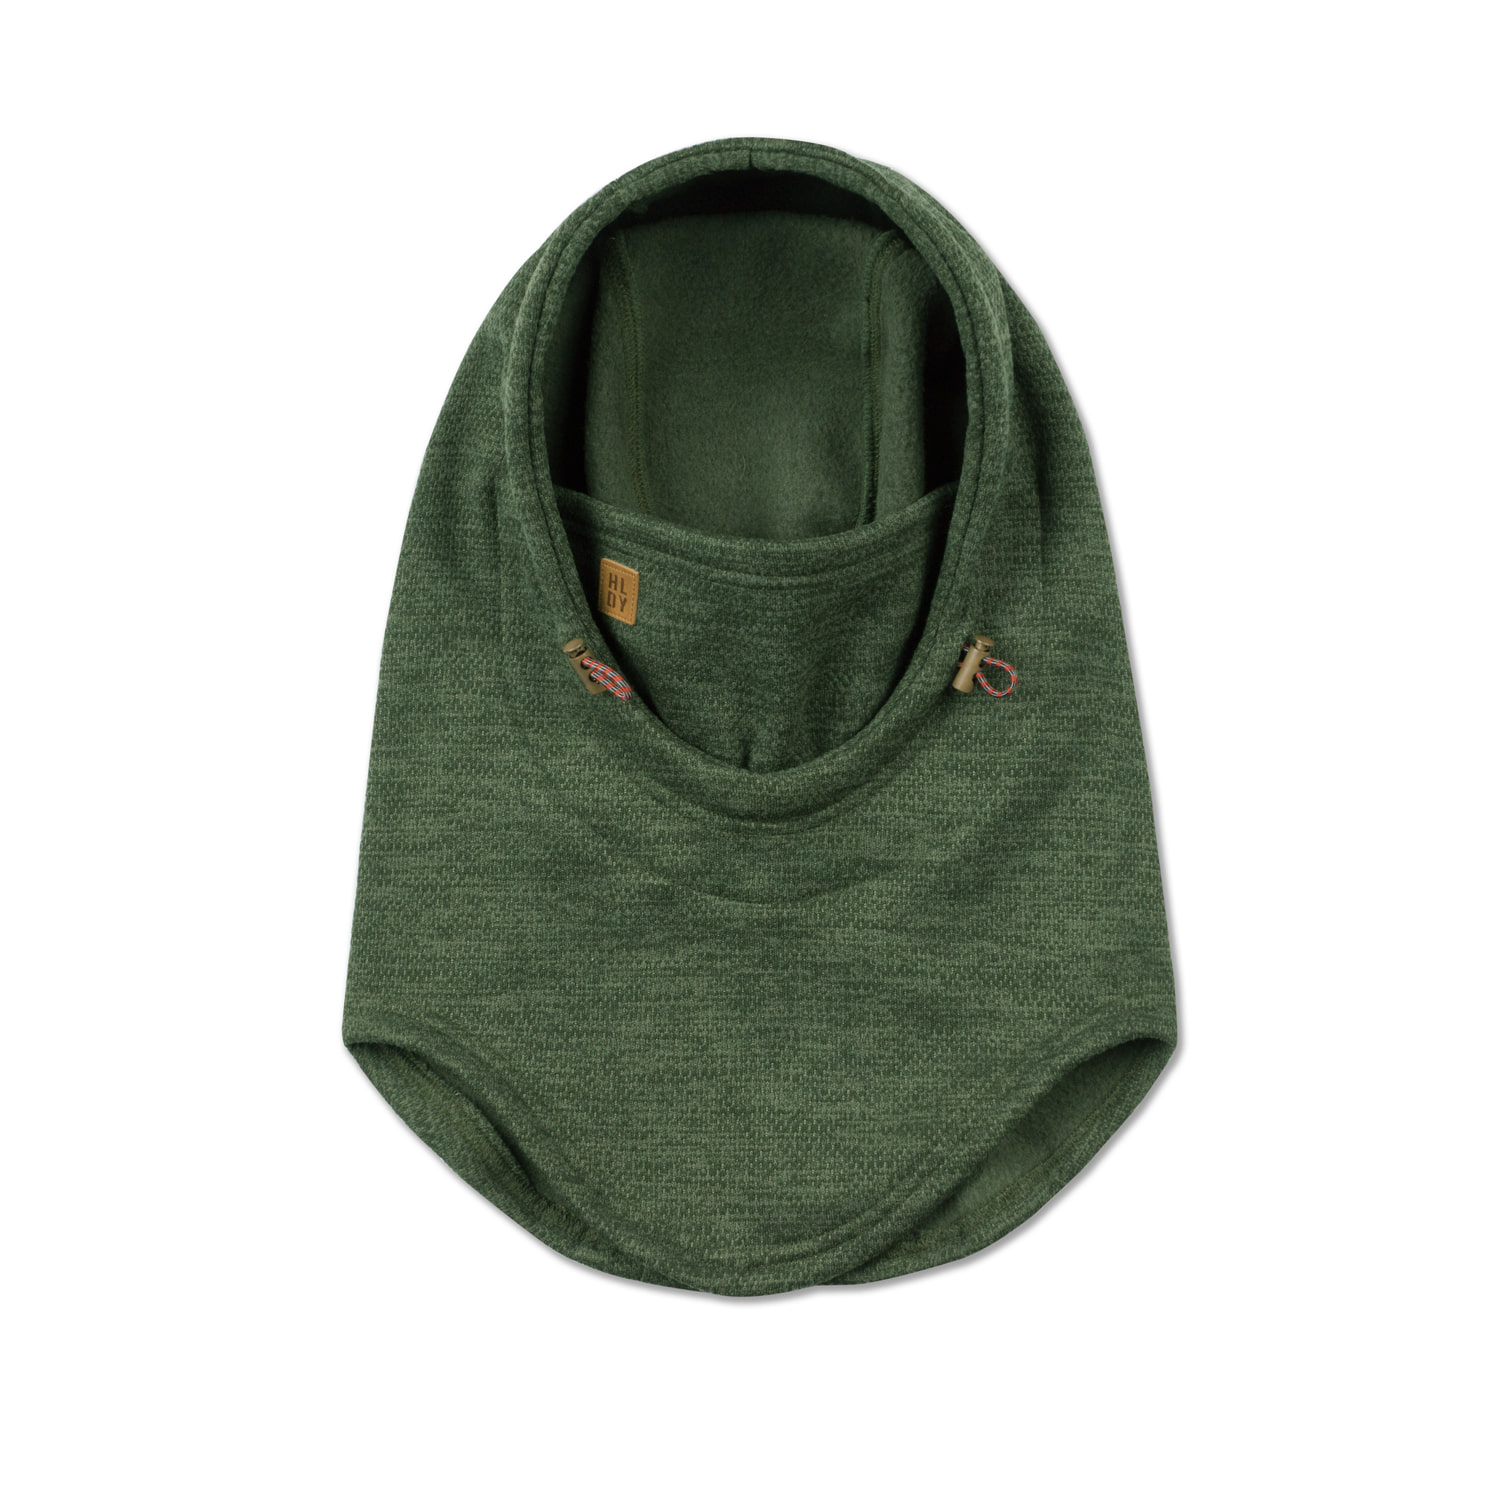 BASIC hood warmer- khaki